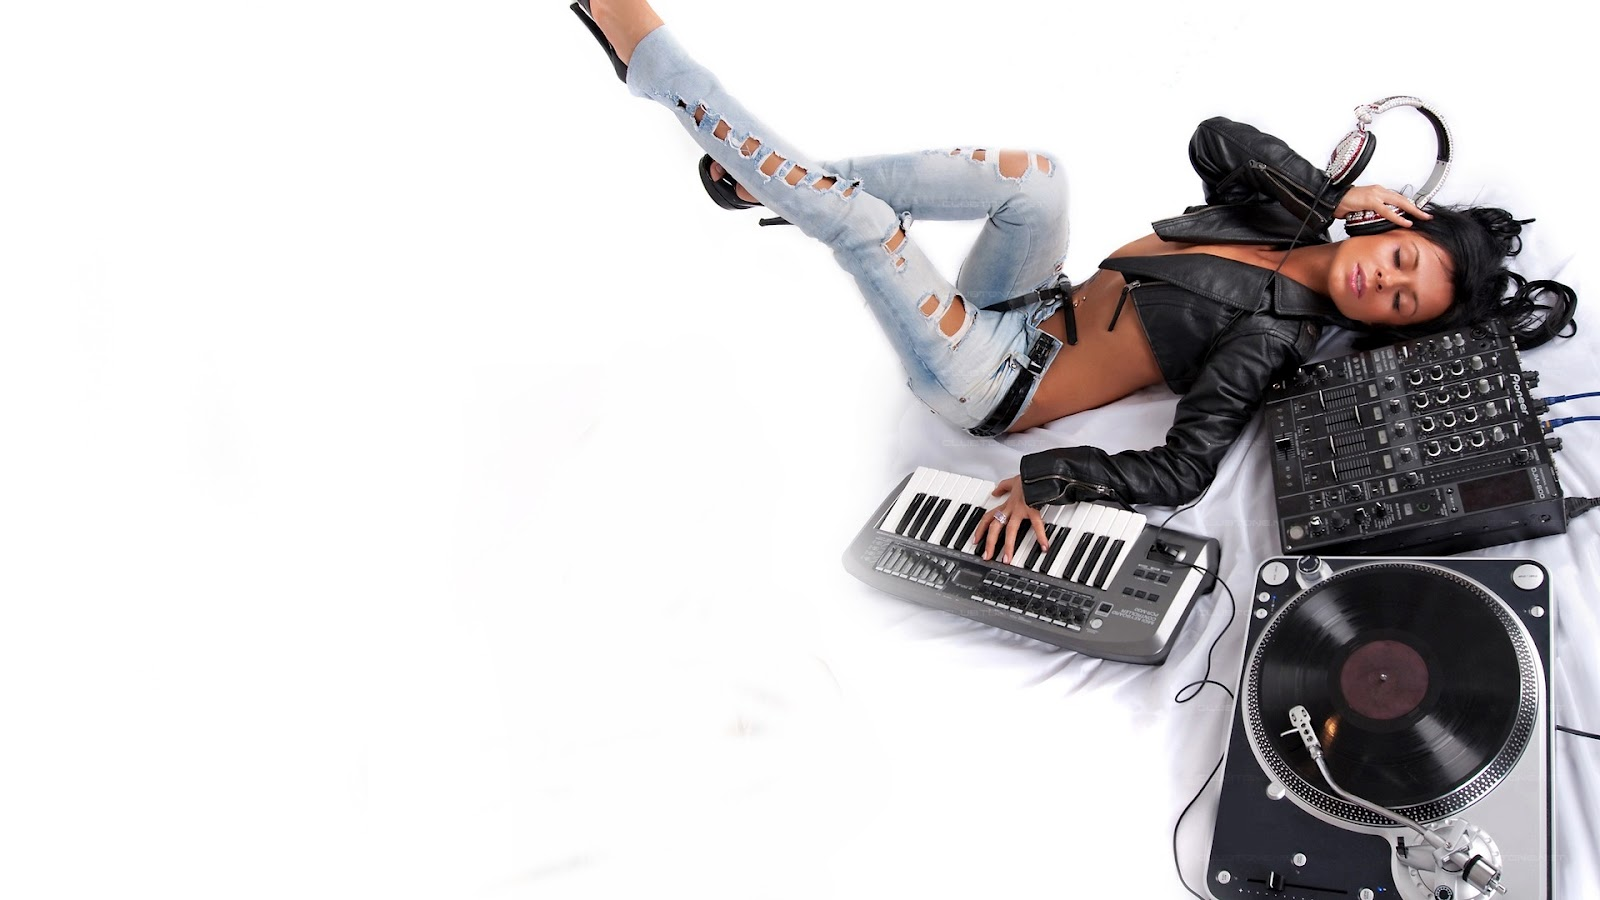 http://4.bp.blogspot.com/-or2YODbMKUs/Tz_sH9o2DkI/AAAAAAAAAcU/mGlITUWdhro/s1600/-vinyl-synthesizer-headphones-Hot-Dj-HD-Wallpapers-for-fullscreen-and-widescreen-desktop-background-Wallpaper-wallpapers-computer-8469-1920x1080.jpg